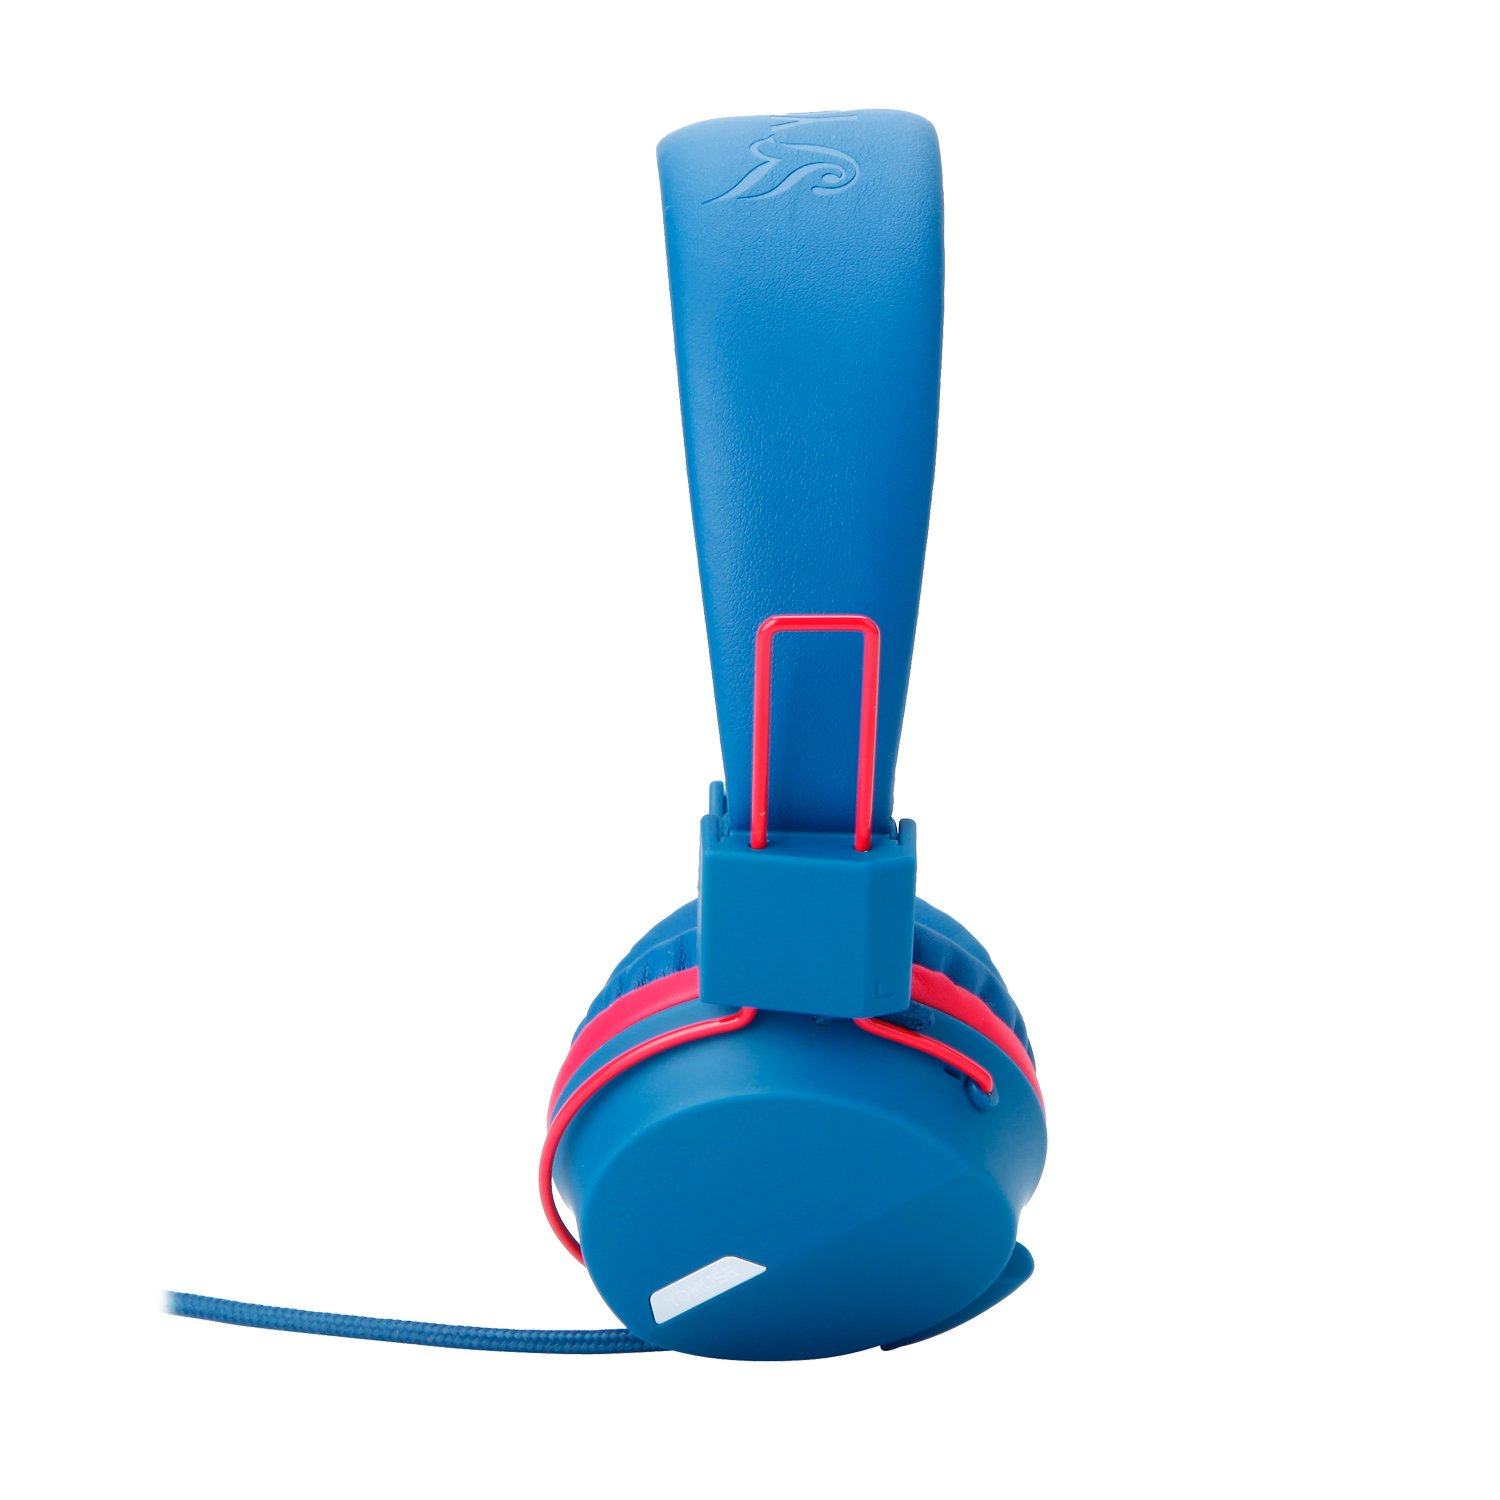 Yomuse F85 On Ear Foldable Headphones with Microphone for Kids Teens Adults, Smartphones iPhone iPod iPad Laptop Tablets Mp3/4 Blue Red by Yomuse (Image #4)